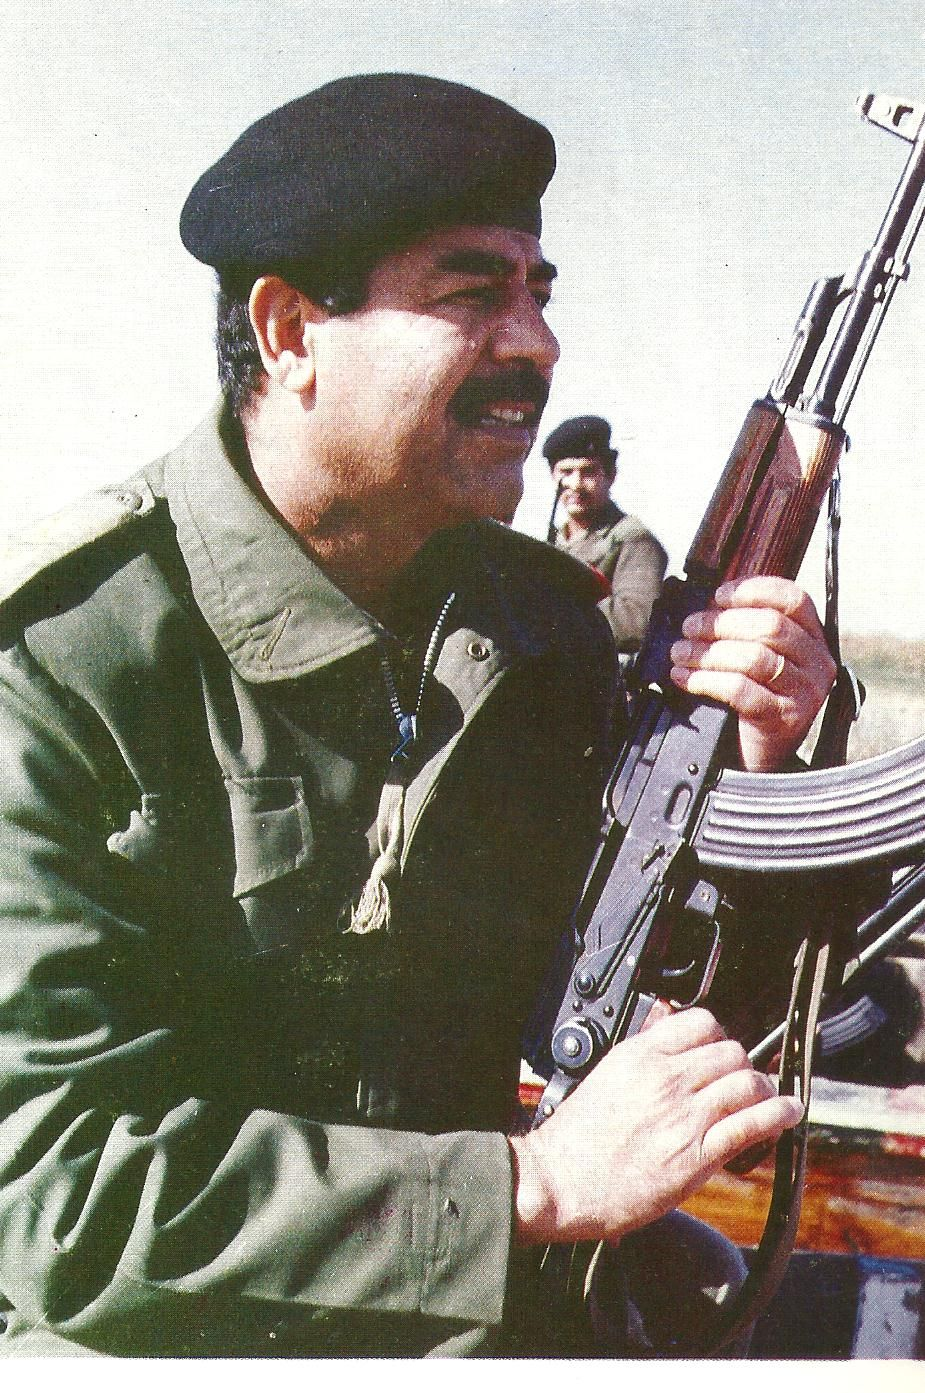 Cigar Wallpaper Iphone Iraqi Leader Saddam Hussein In Better Days